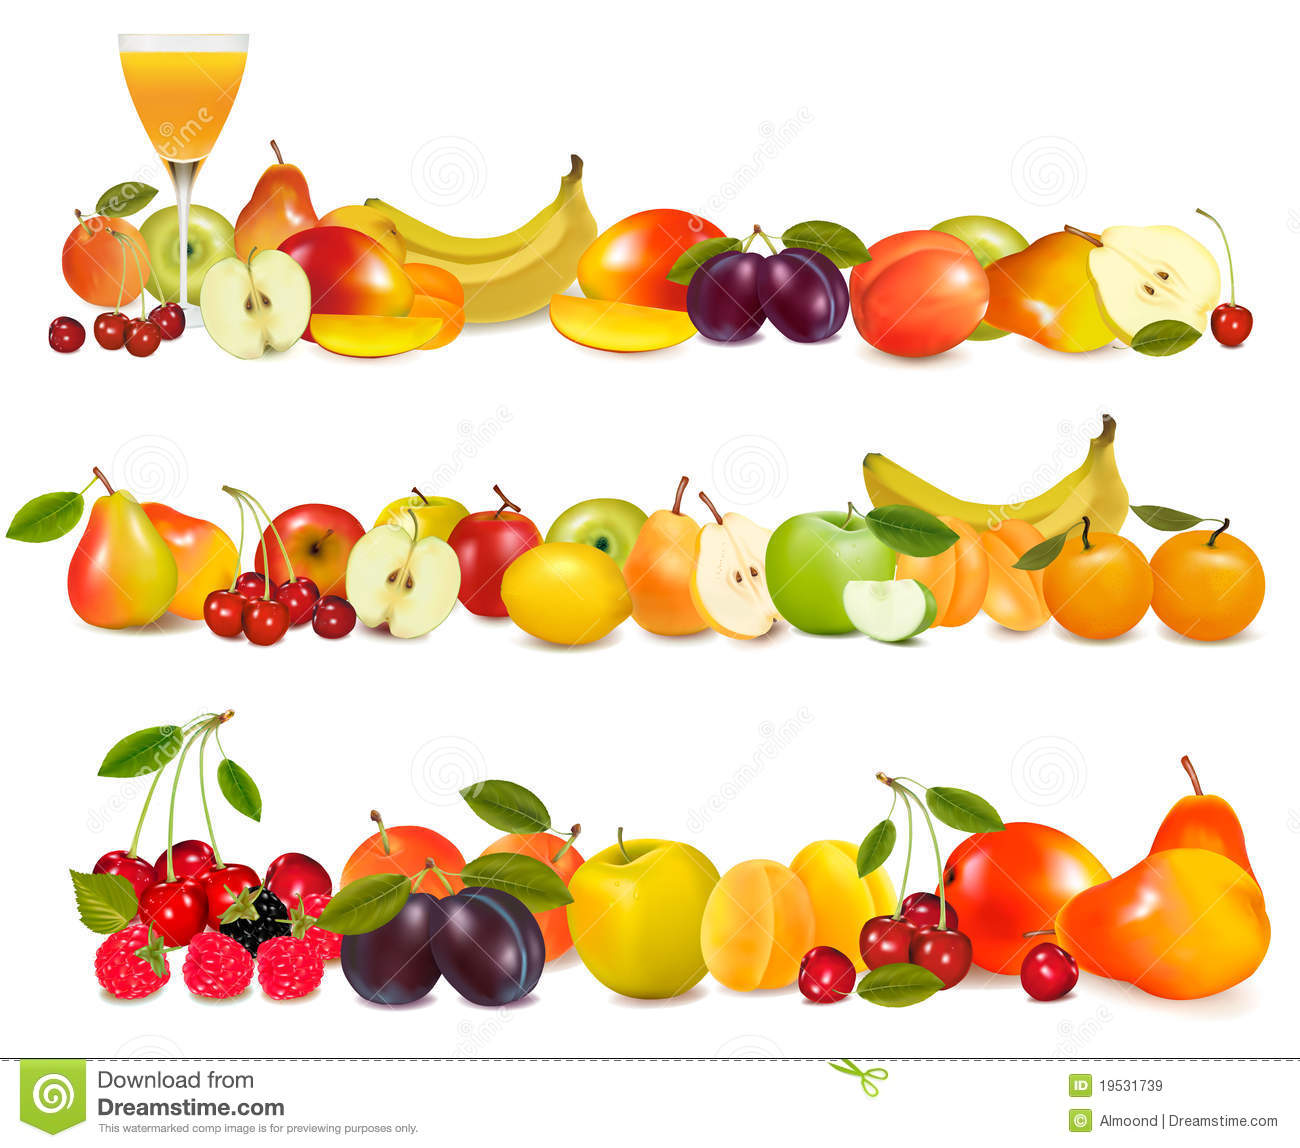 Royalty Free Stock Images: Three fruit design borders isolated on ...